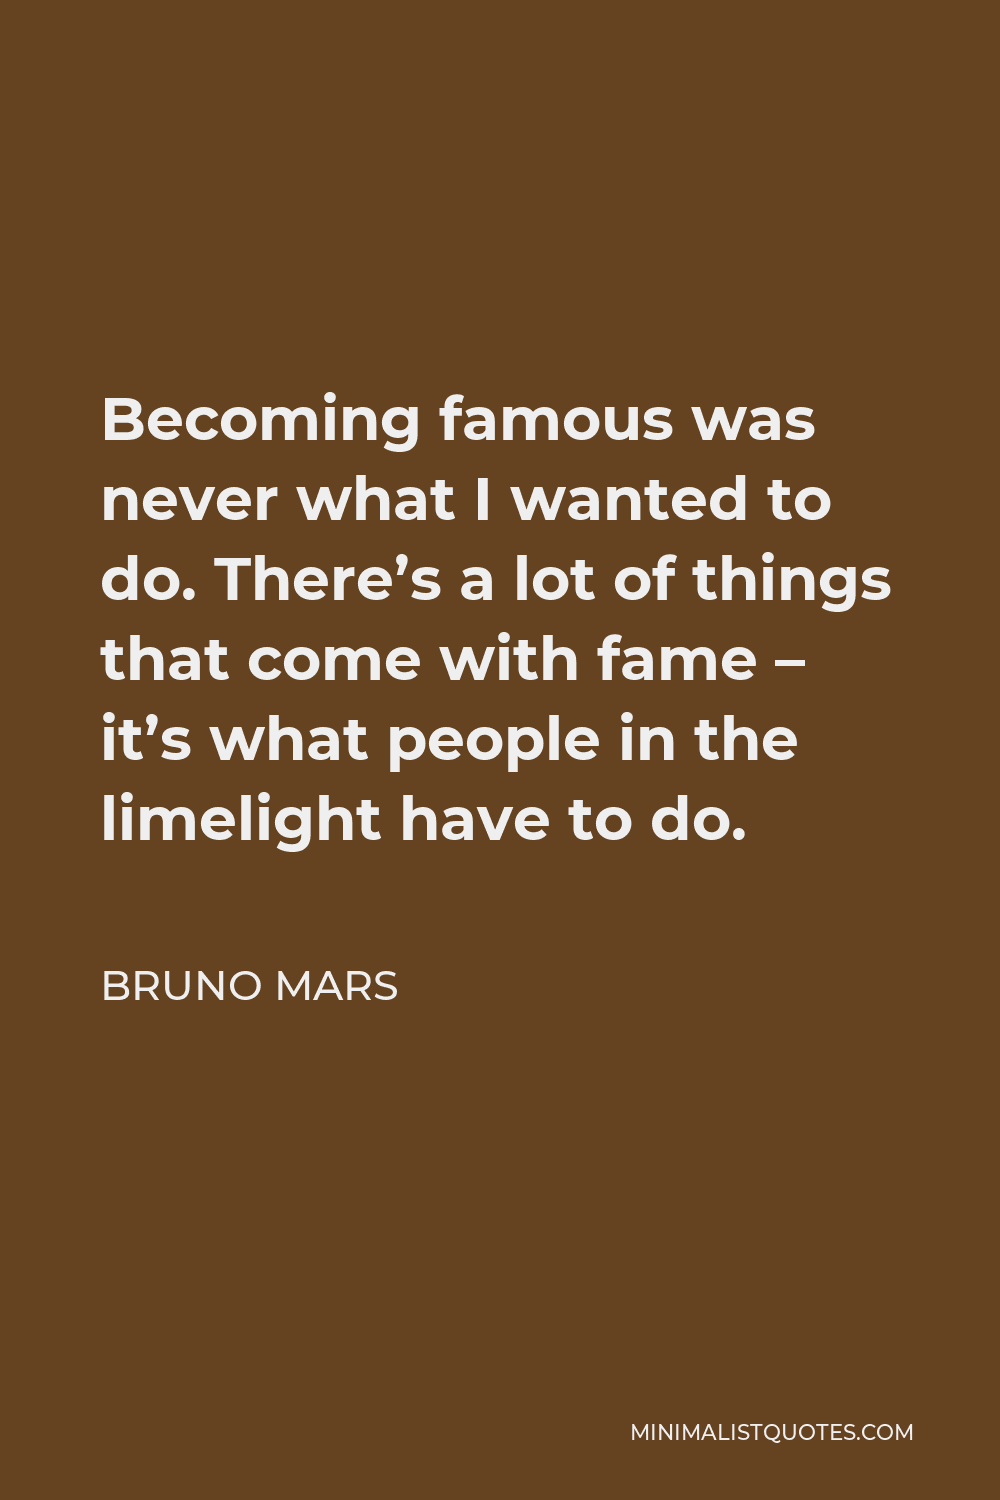 Bruno Mars Quote - Becoming famous was never what I wanted to do. There's a lot of things that come with fame – it's what people in the limelight have to do.